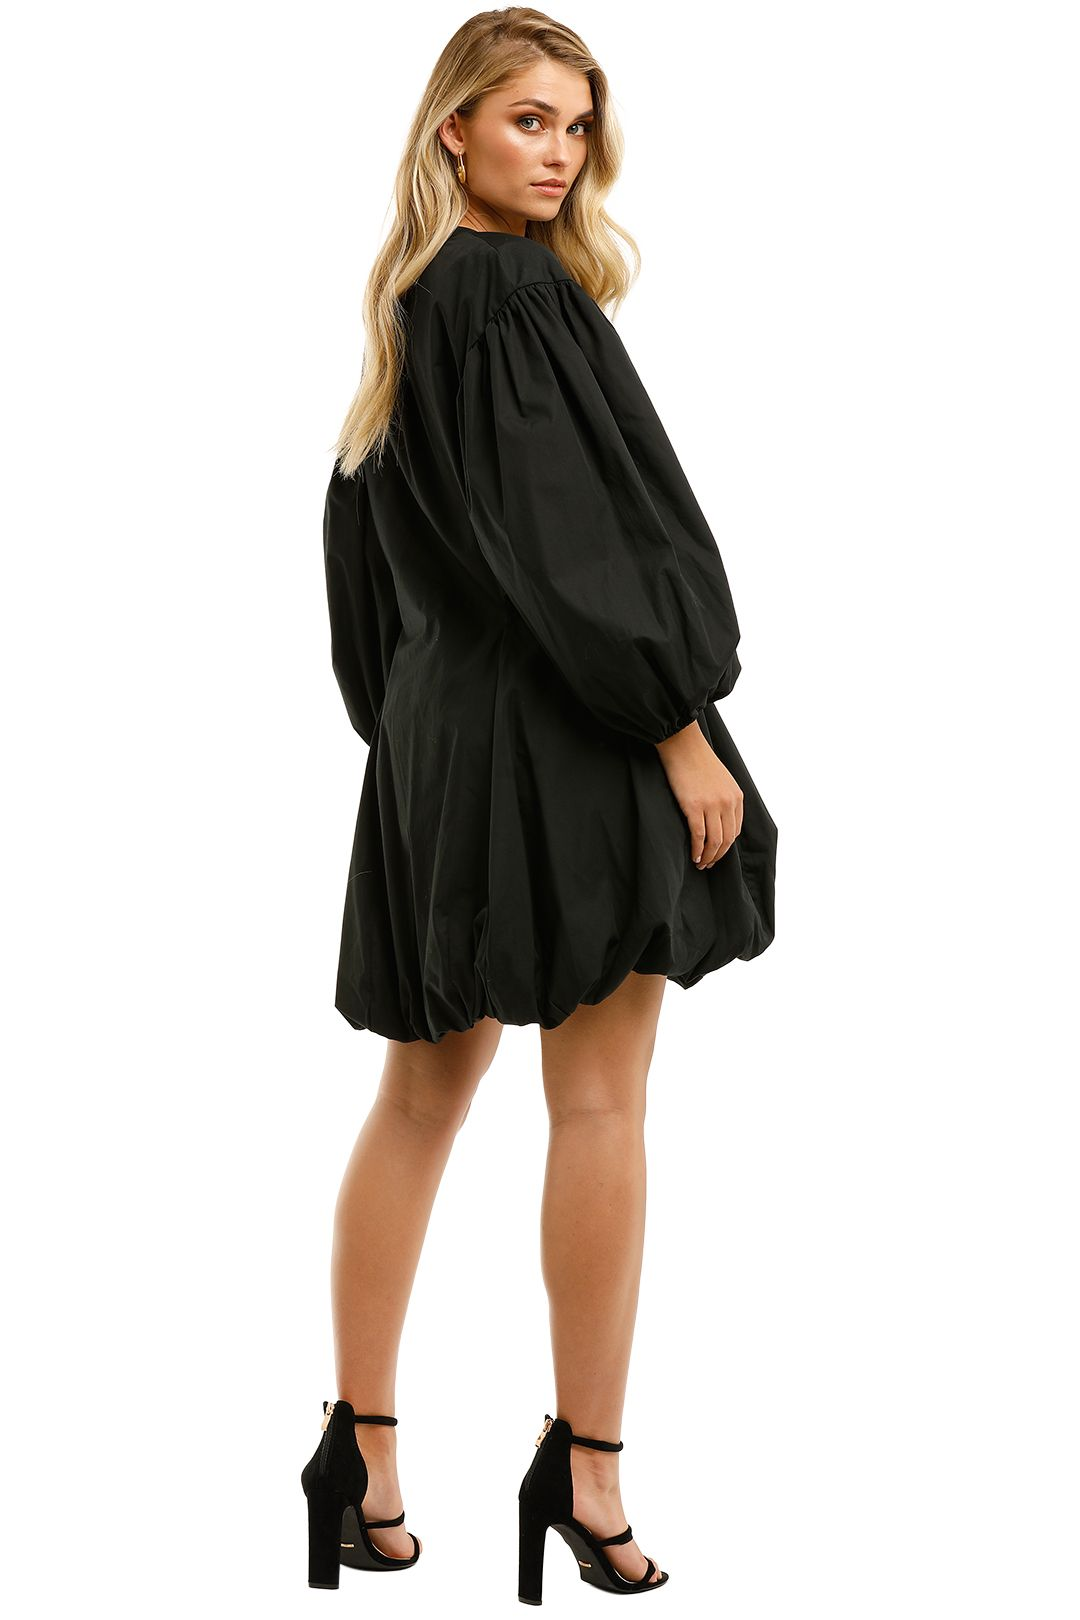 Bassike-Black-Cotton-Gathered-Sleeve-Dress-Black-Back